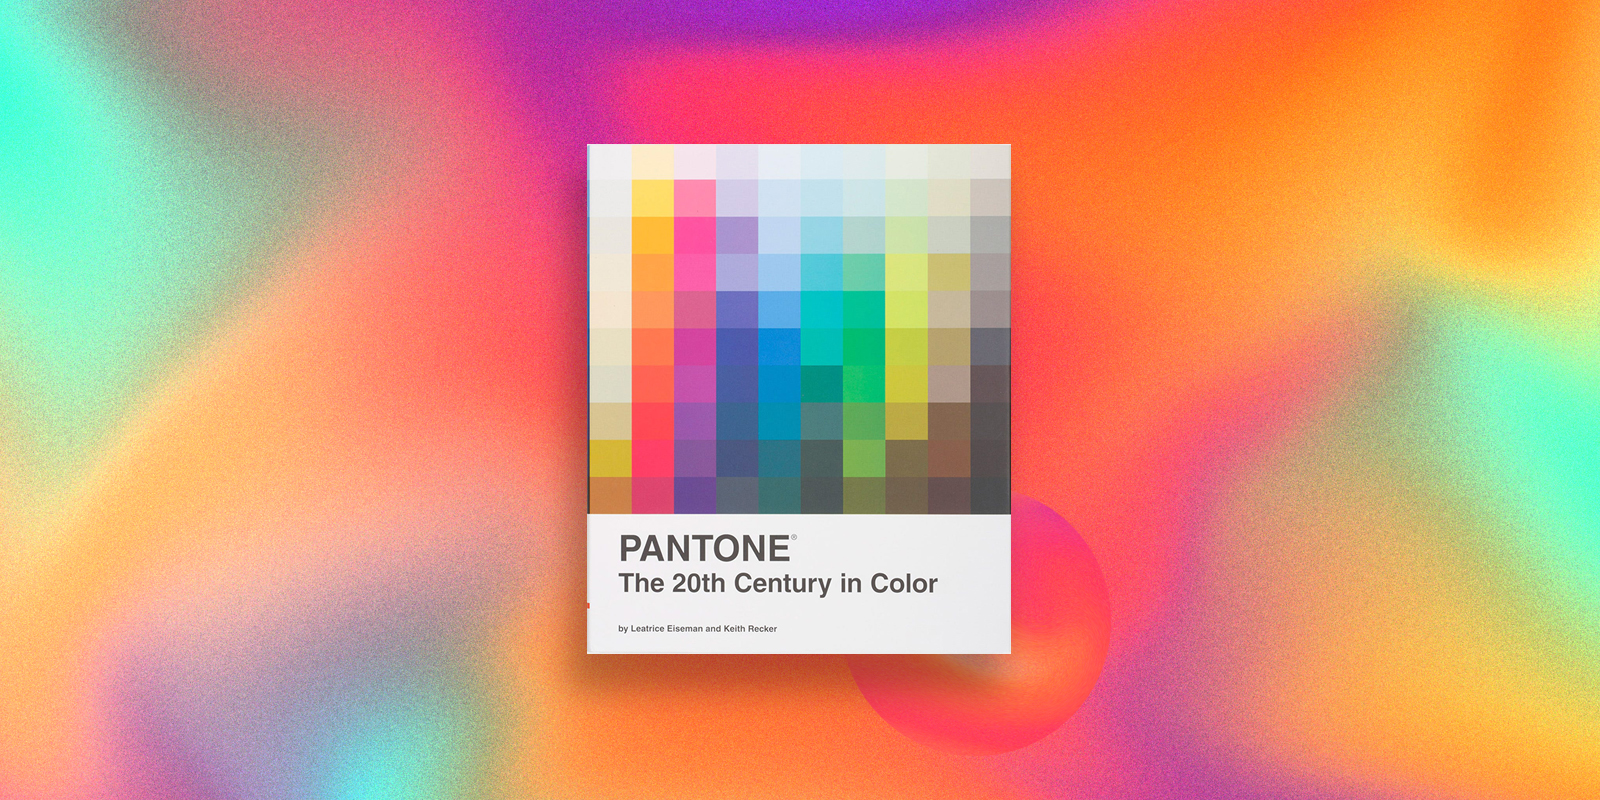 PANTONE The 20th Century Best Color Theory Books